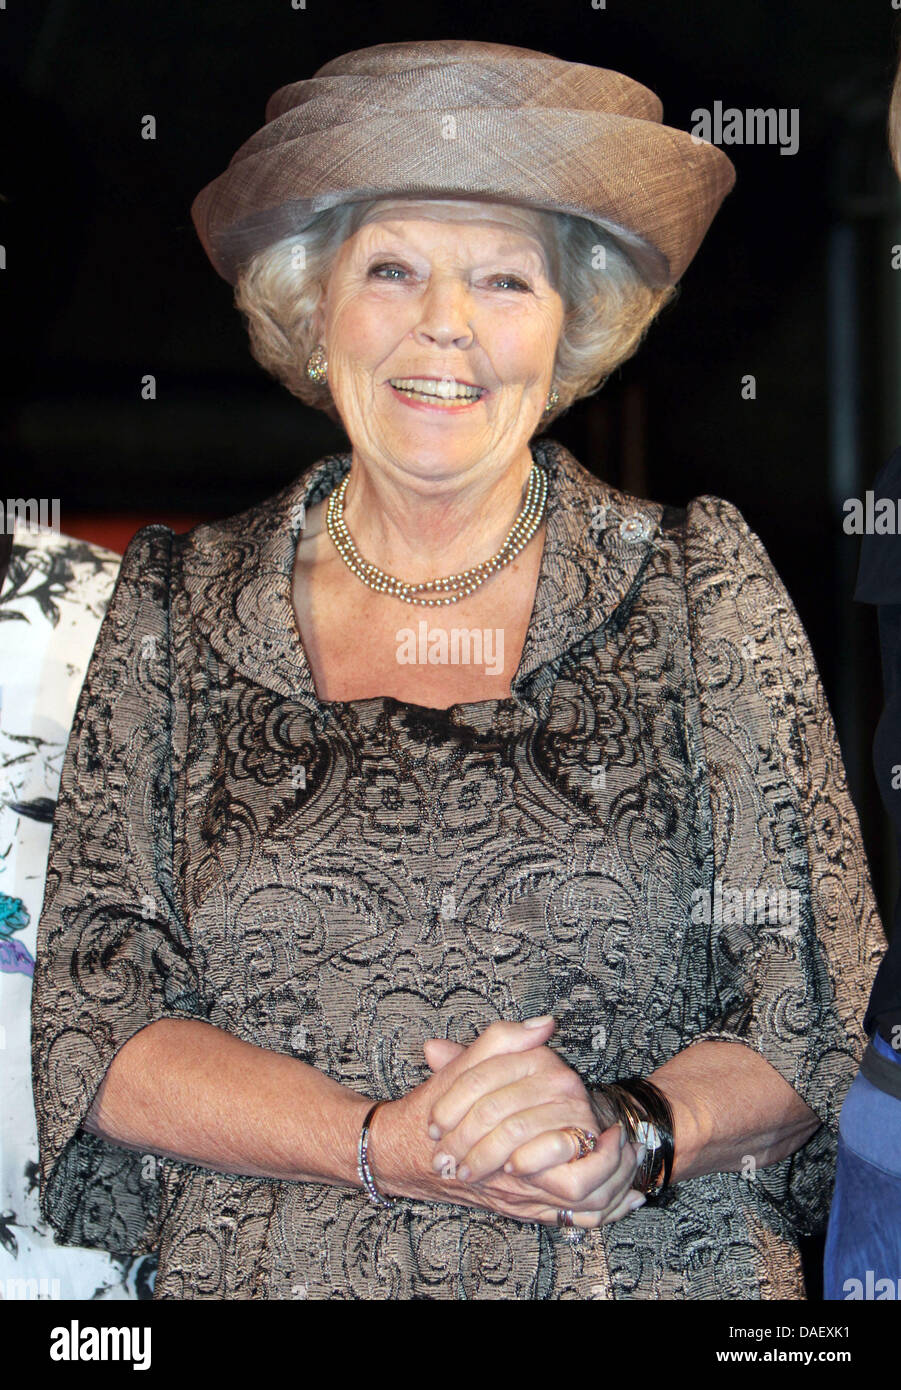 Queen Beatrix of The Netherlands attend the jubilee celebration of the Arthritis Foundation in the Hall of Knights - Stock Image